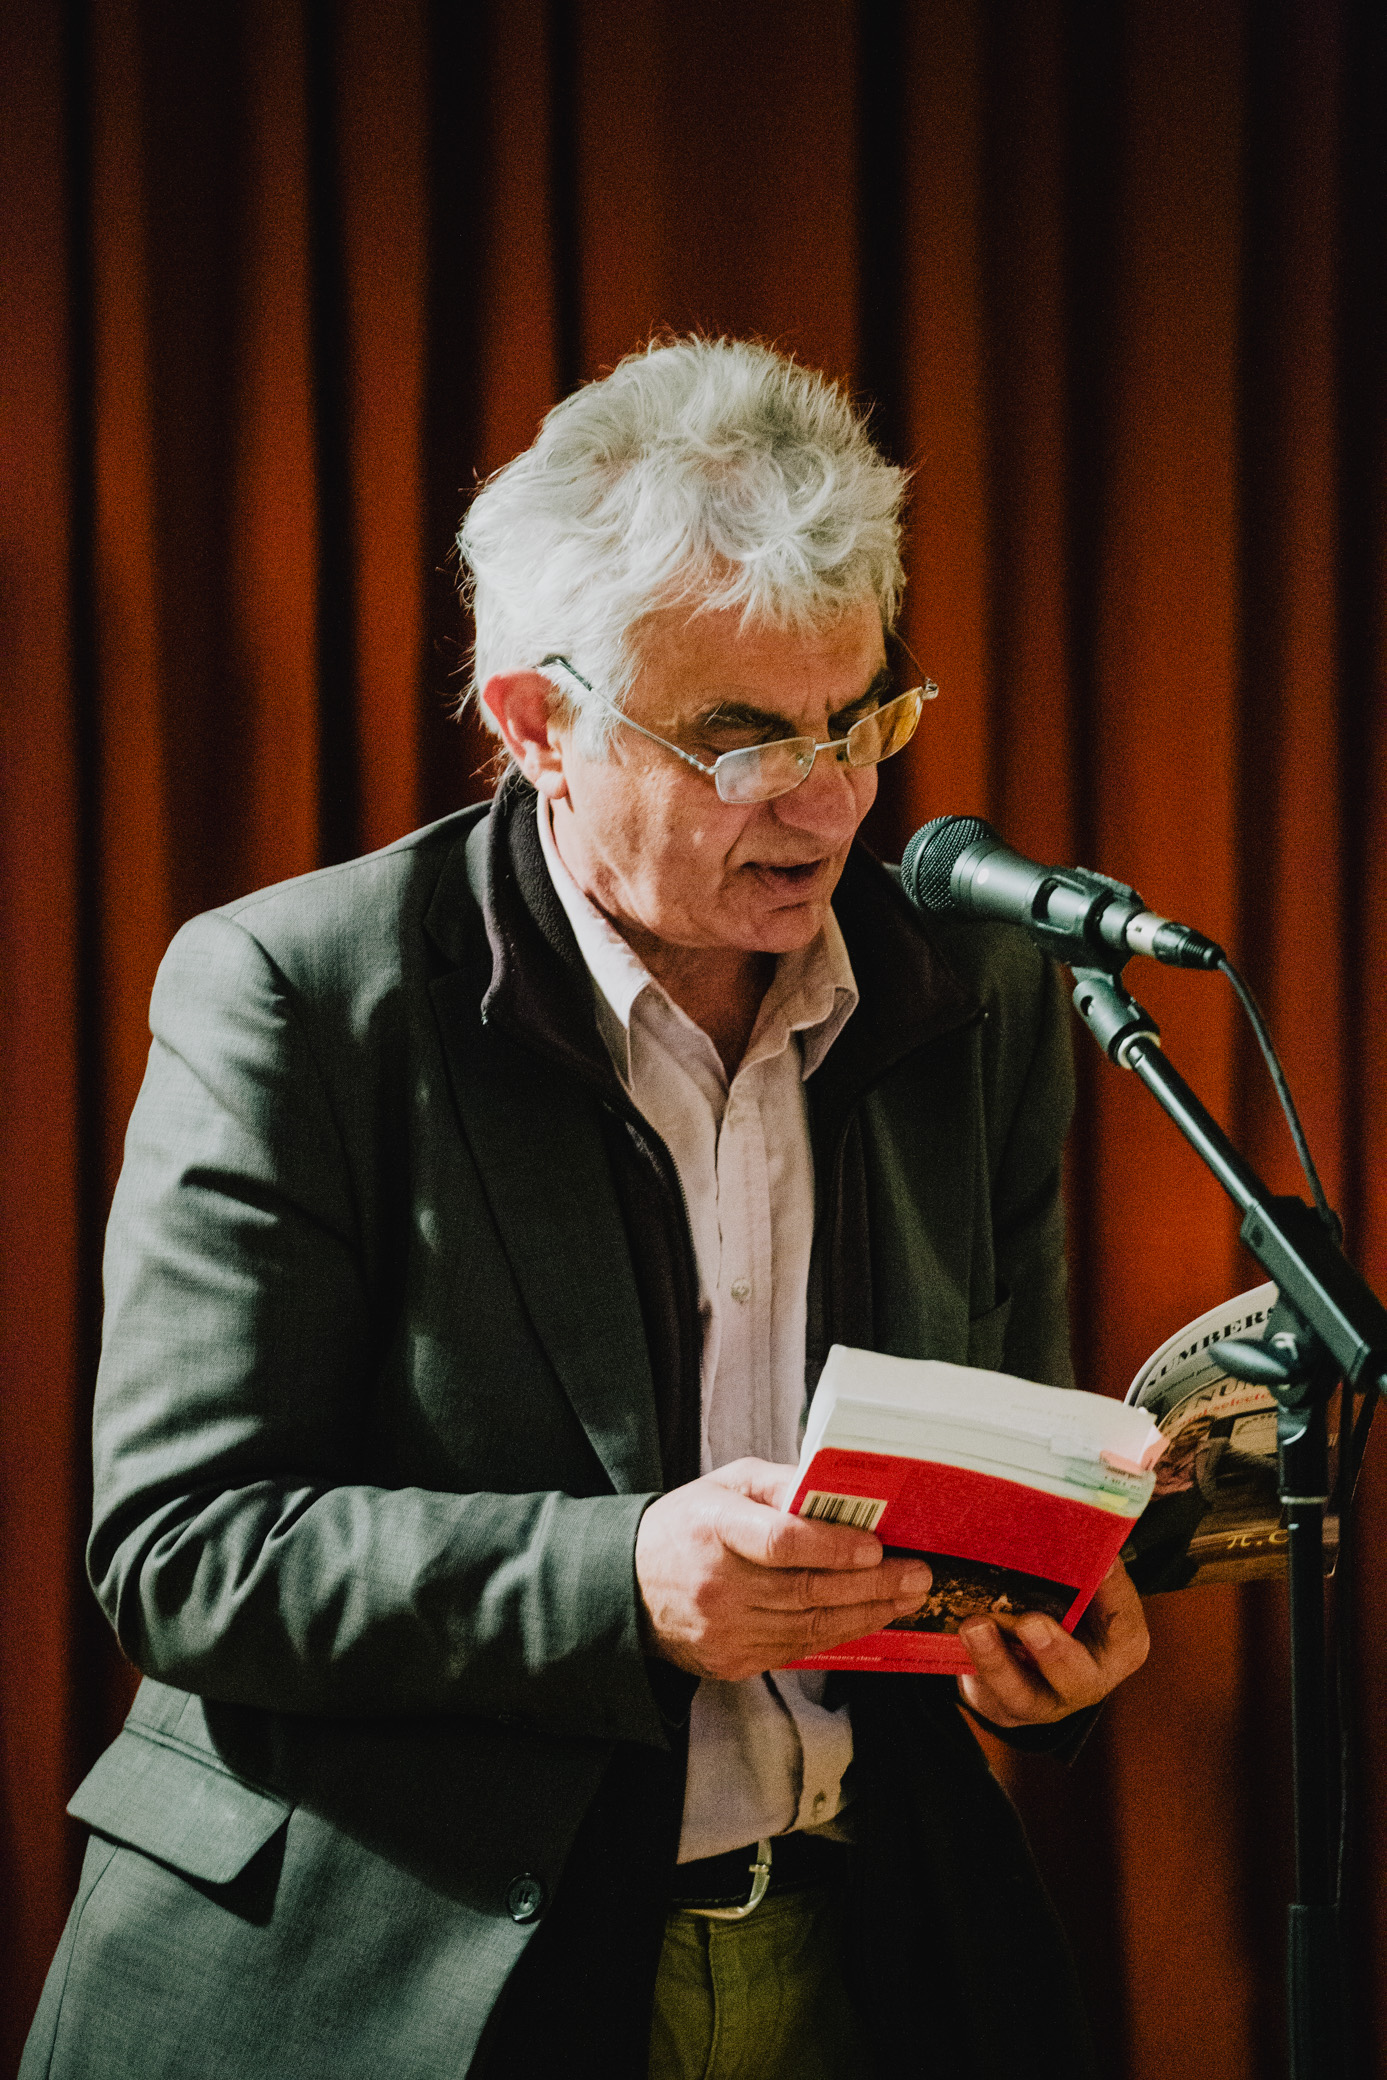 A poet reading from his book